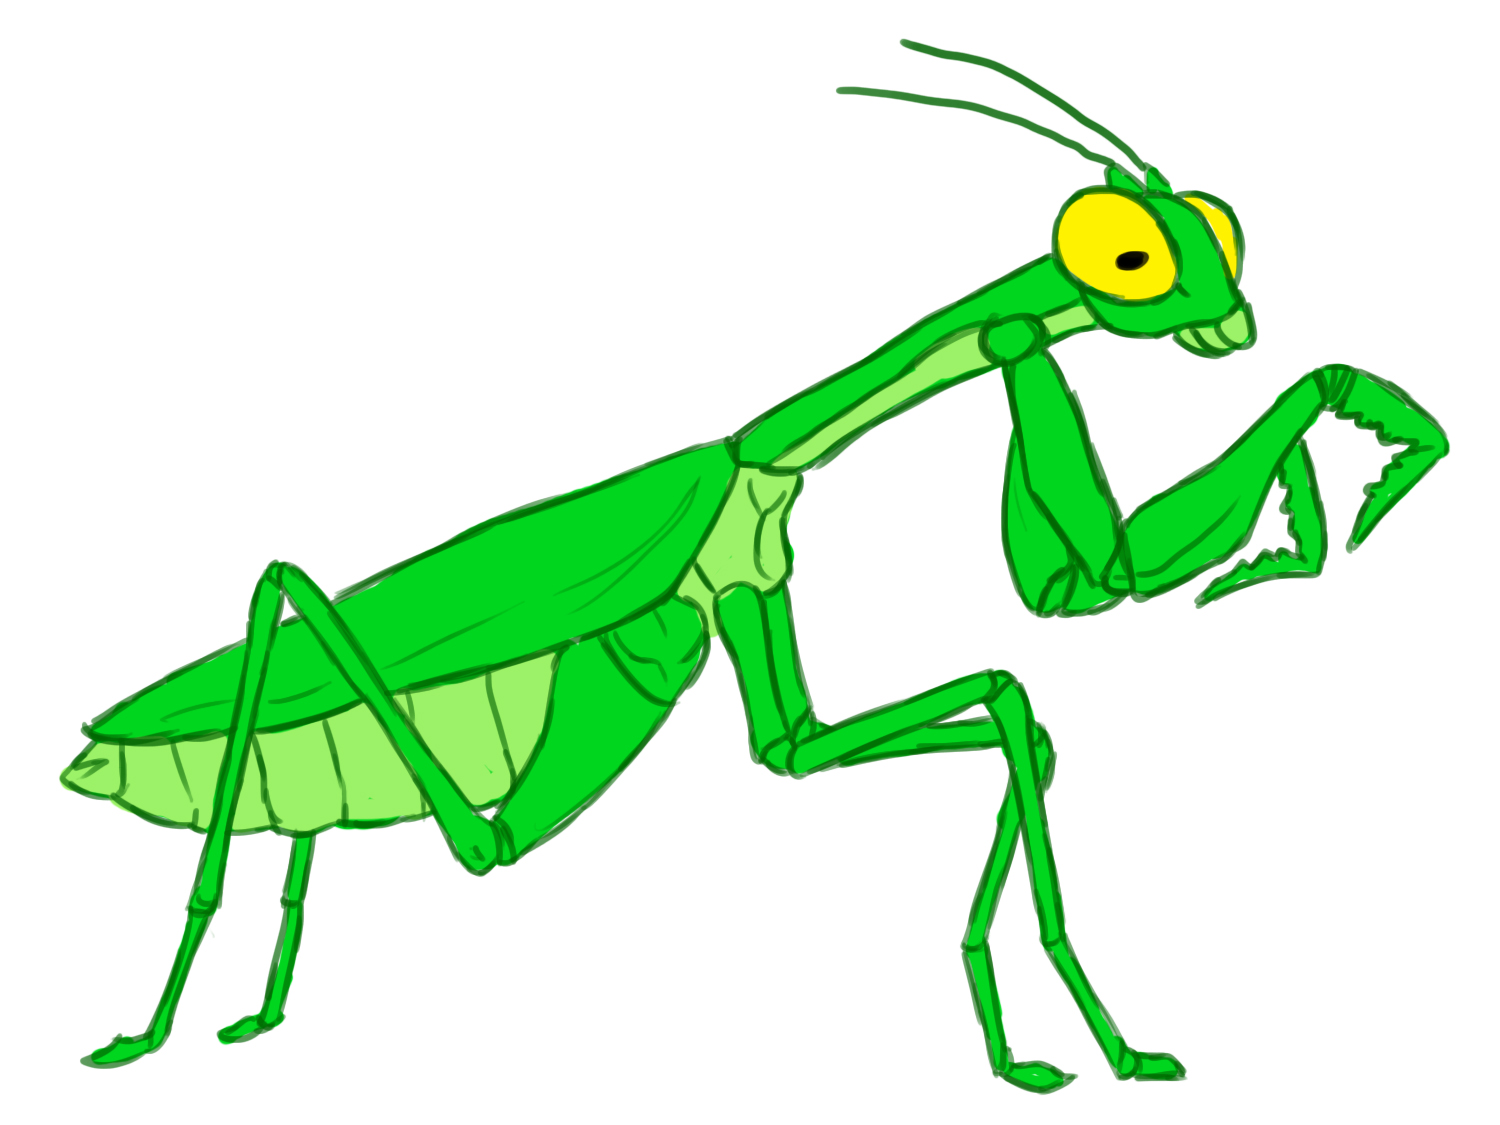 Praying Mantis clipart #17, Download drawings